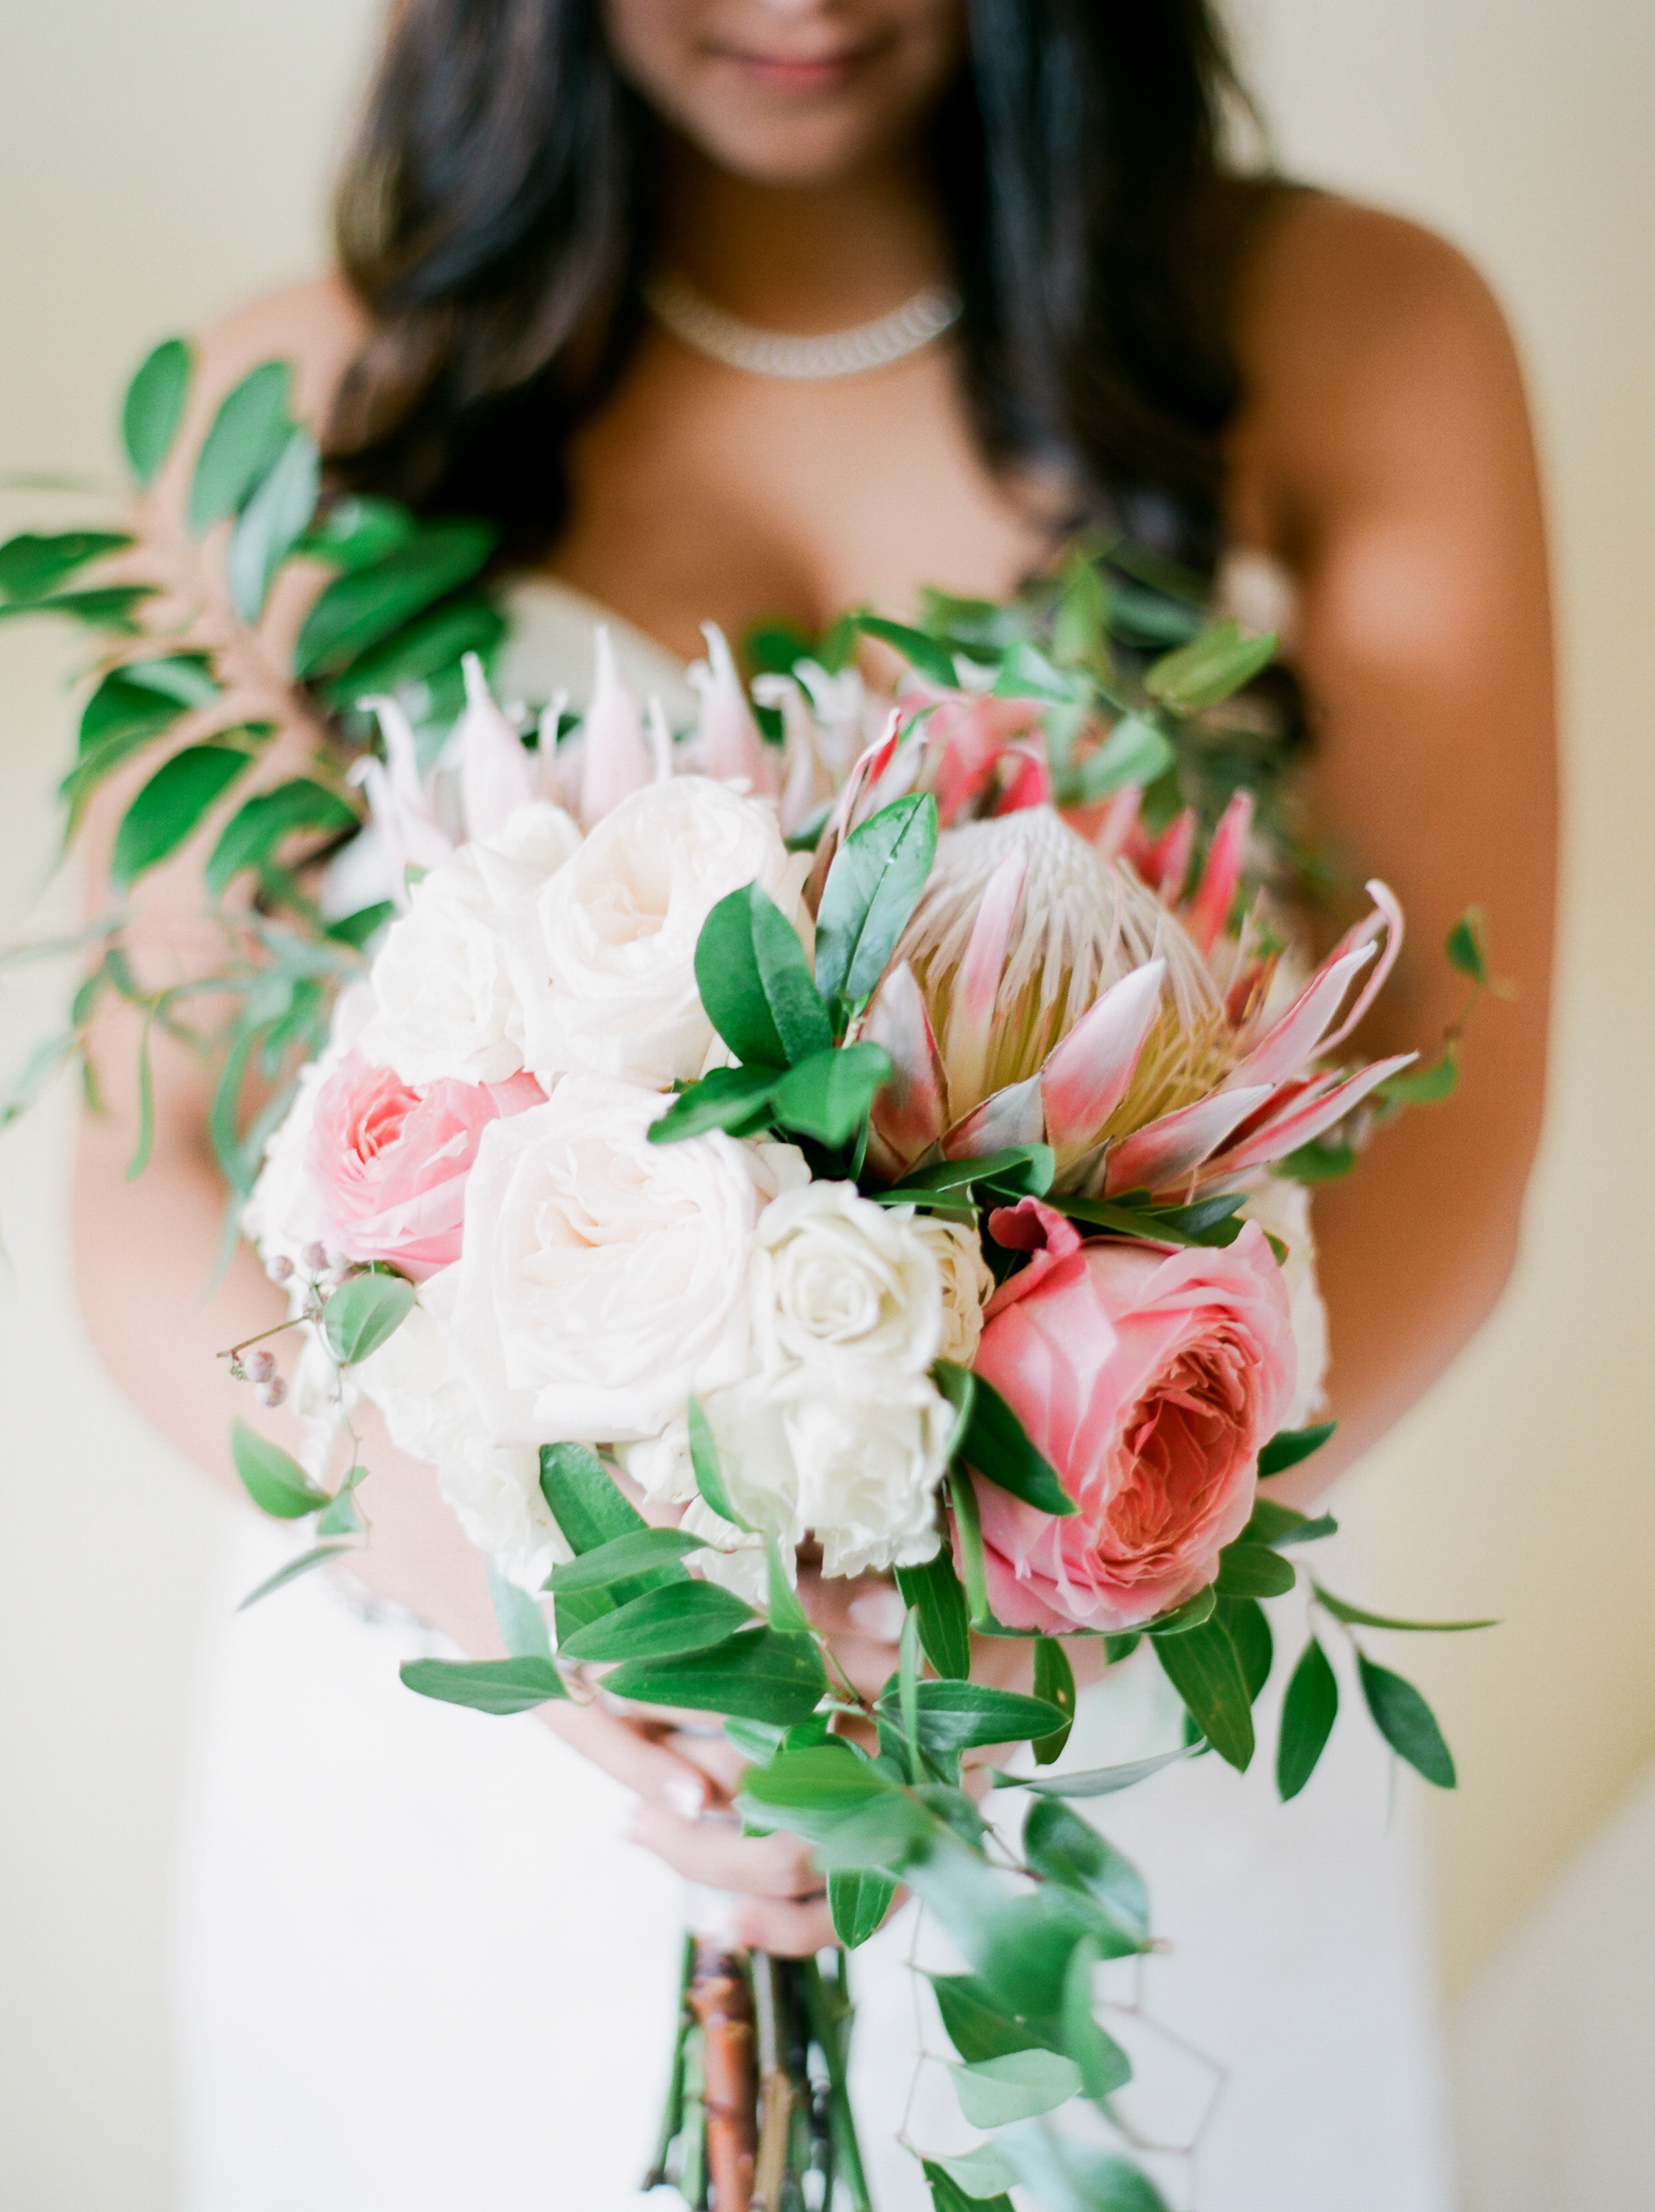 Seaside wedding bouquet | Kaylie B. Poplin Photography | Okaloosa Island fine art wedding photographer